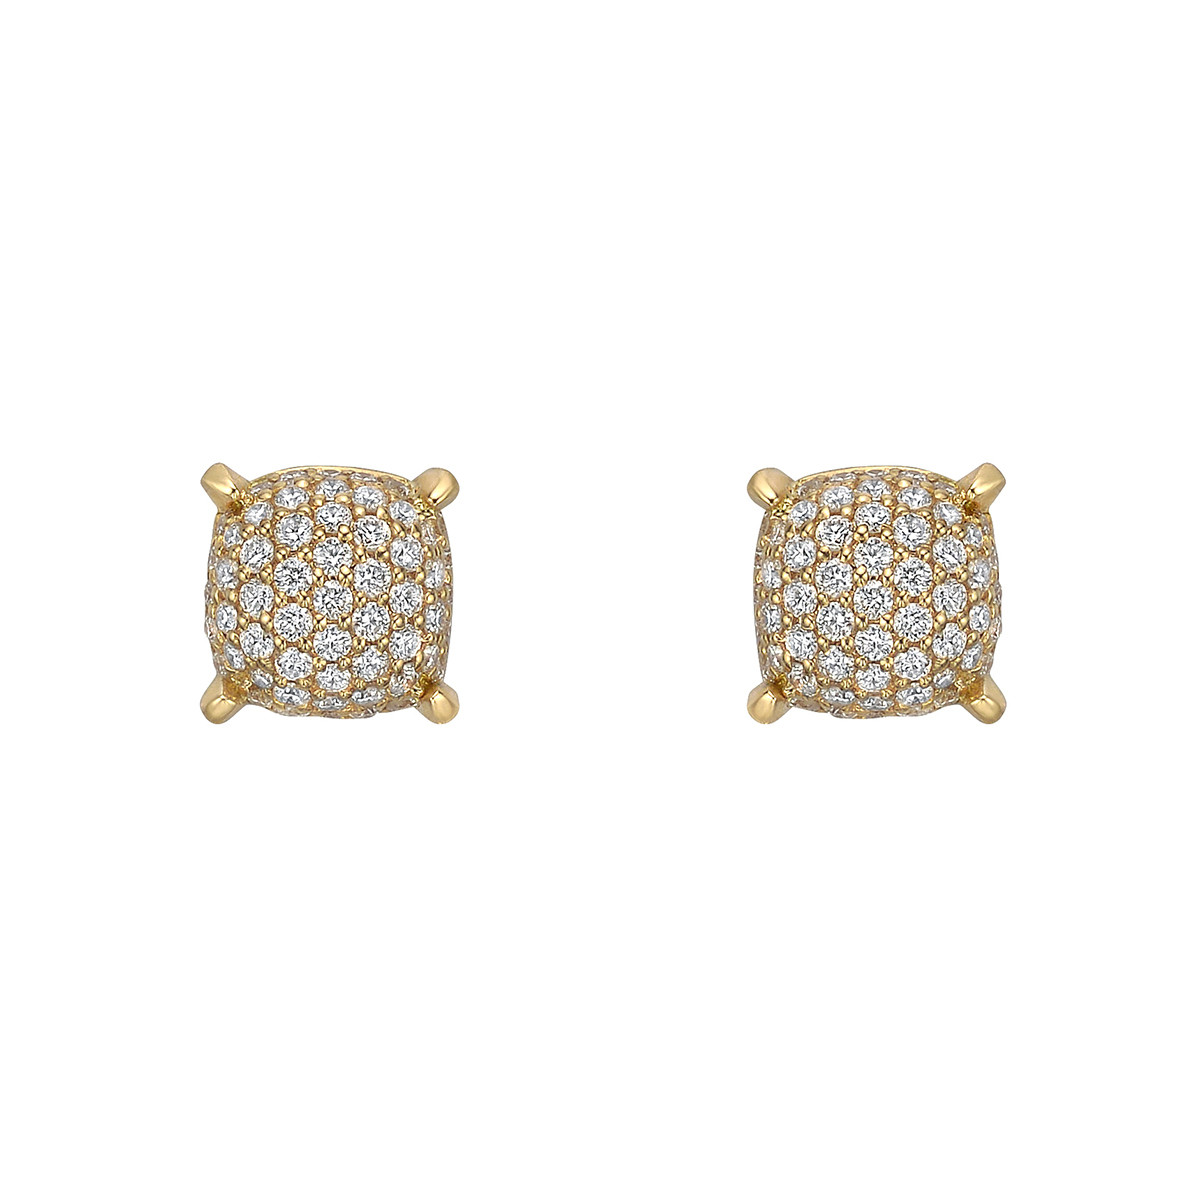 18k Yellow Gold & Pavé Diamond Cushion Earstuds